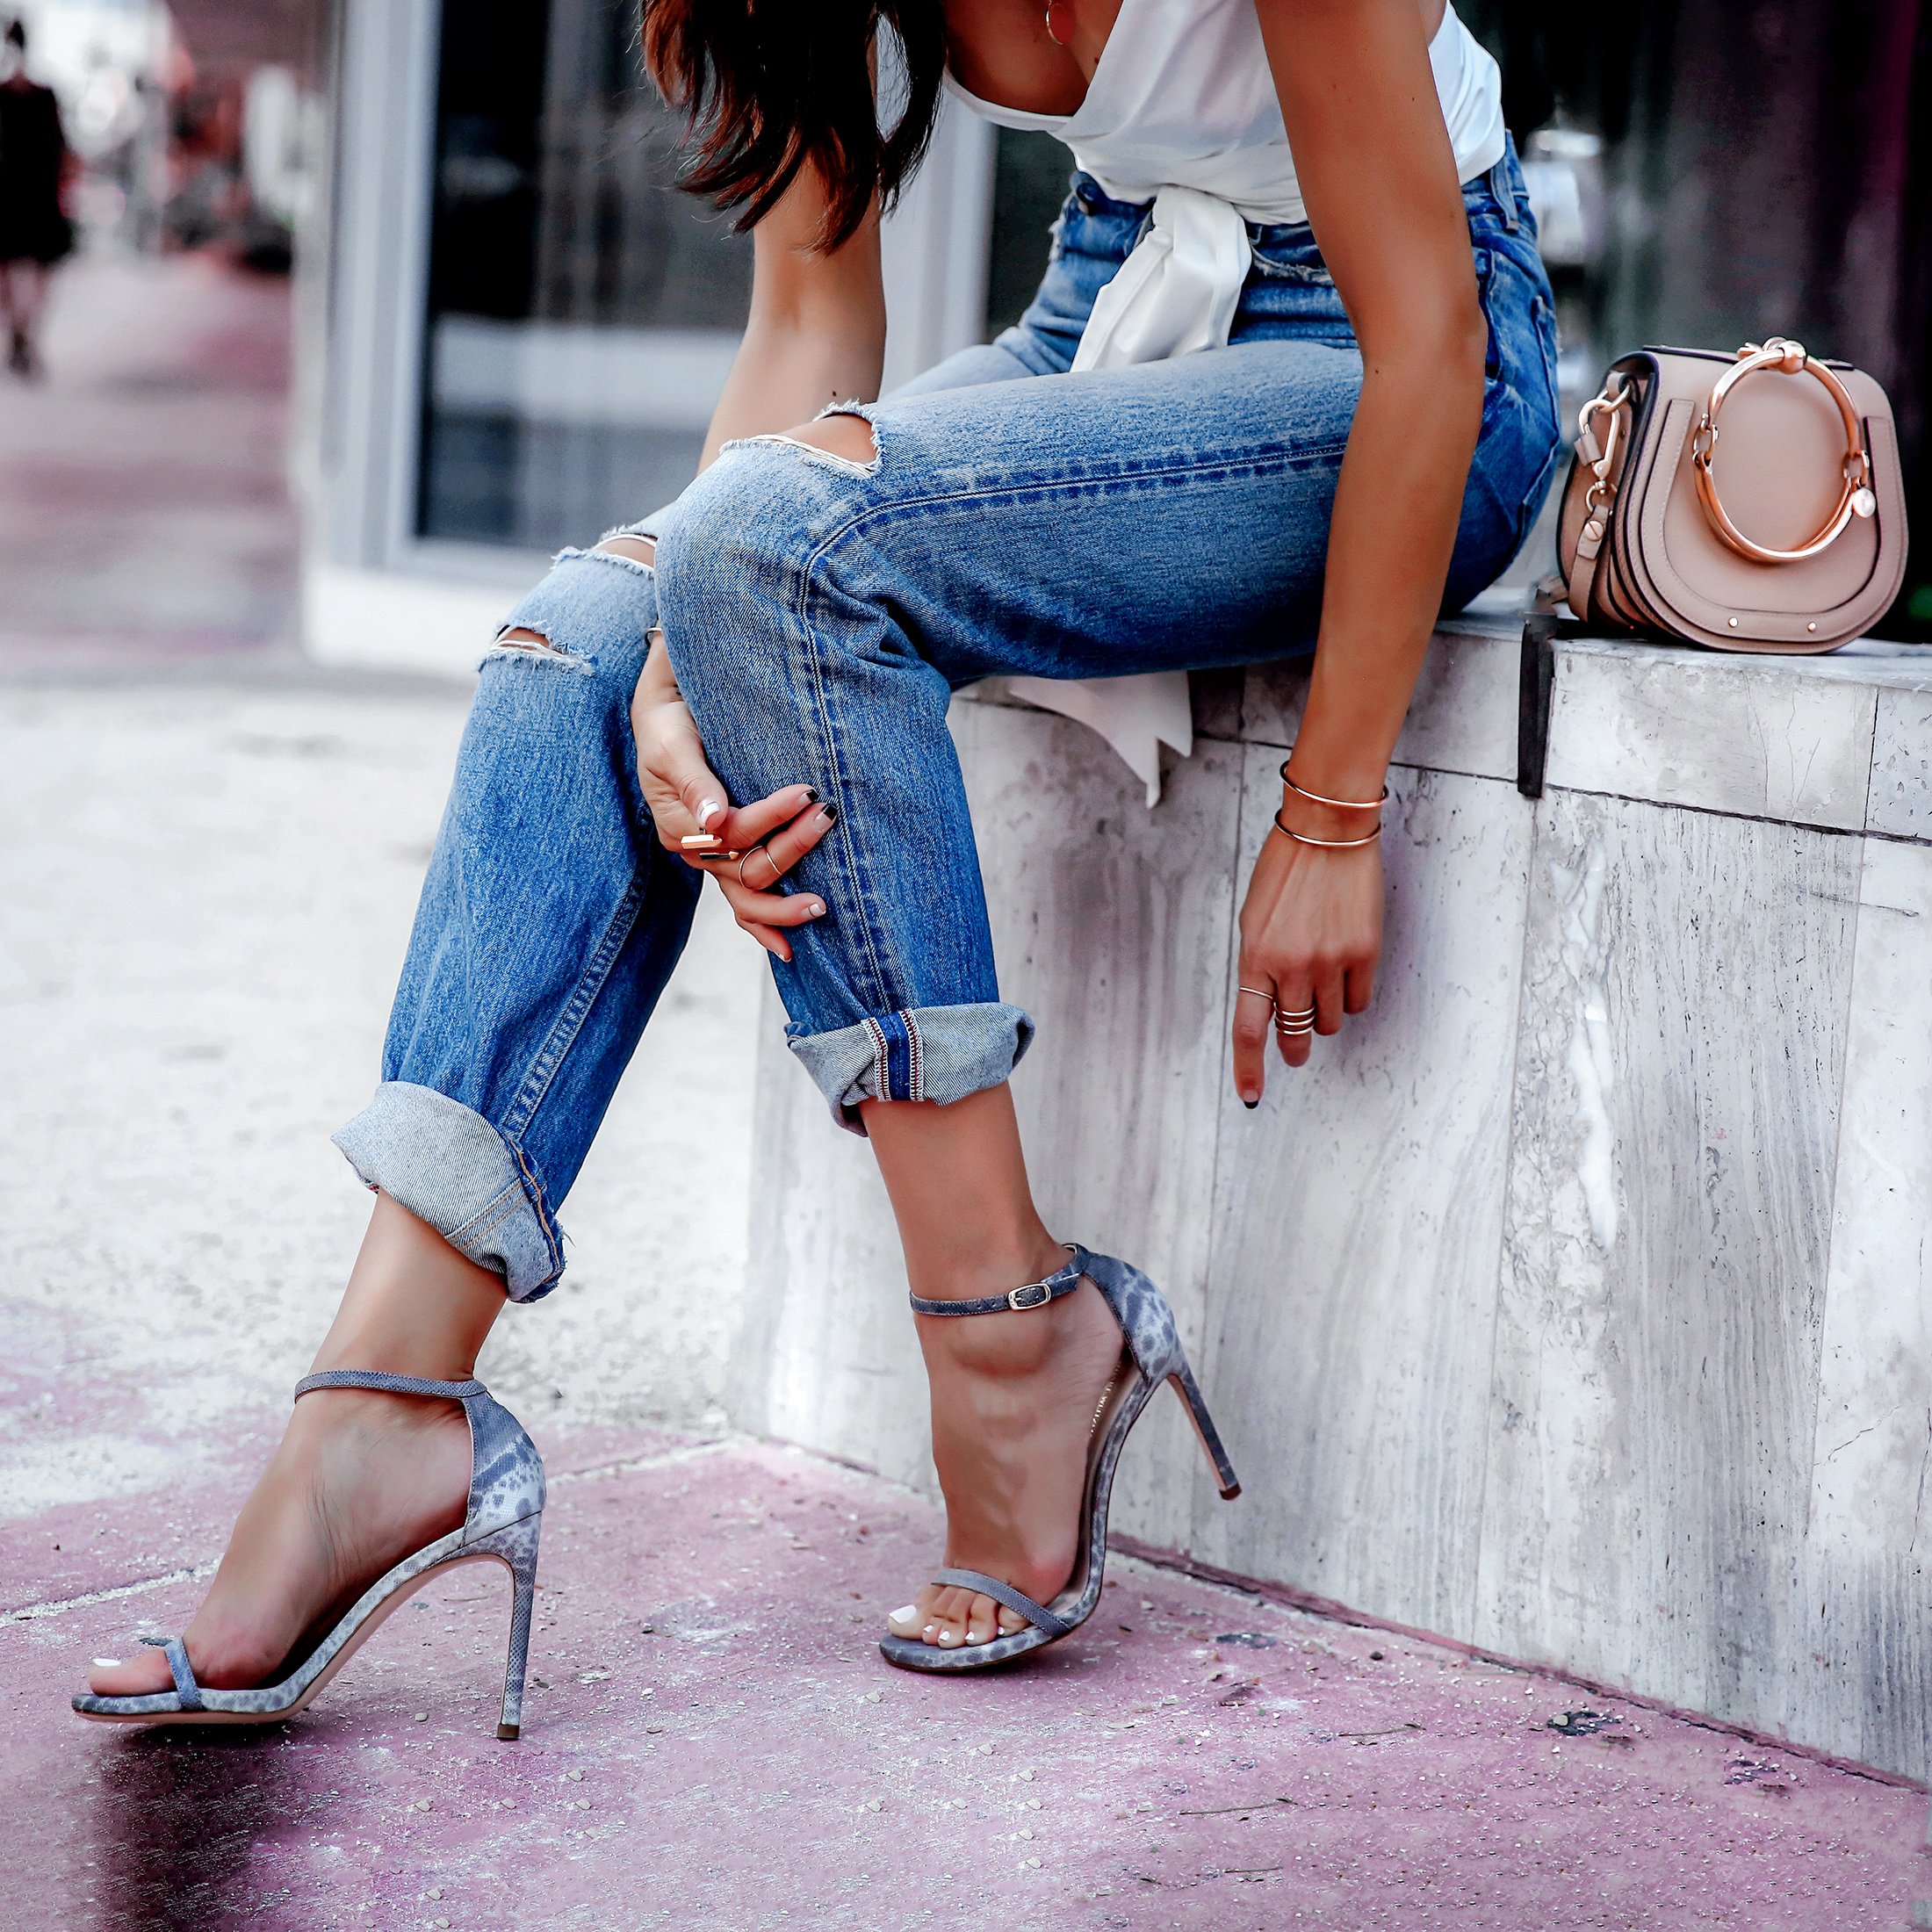 Stuart Weitzman Nudist Song Sandals Moussey Jeans Milly Top Miami Streetstyle Lucys Whims Blogger.jpg